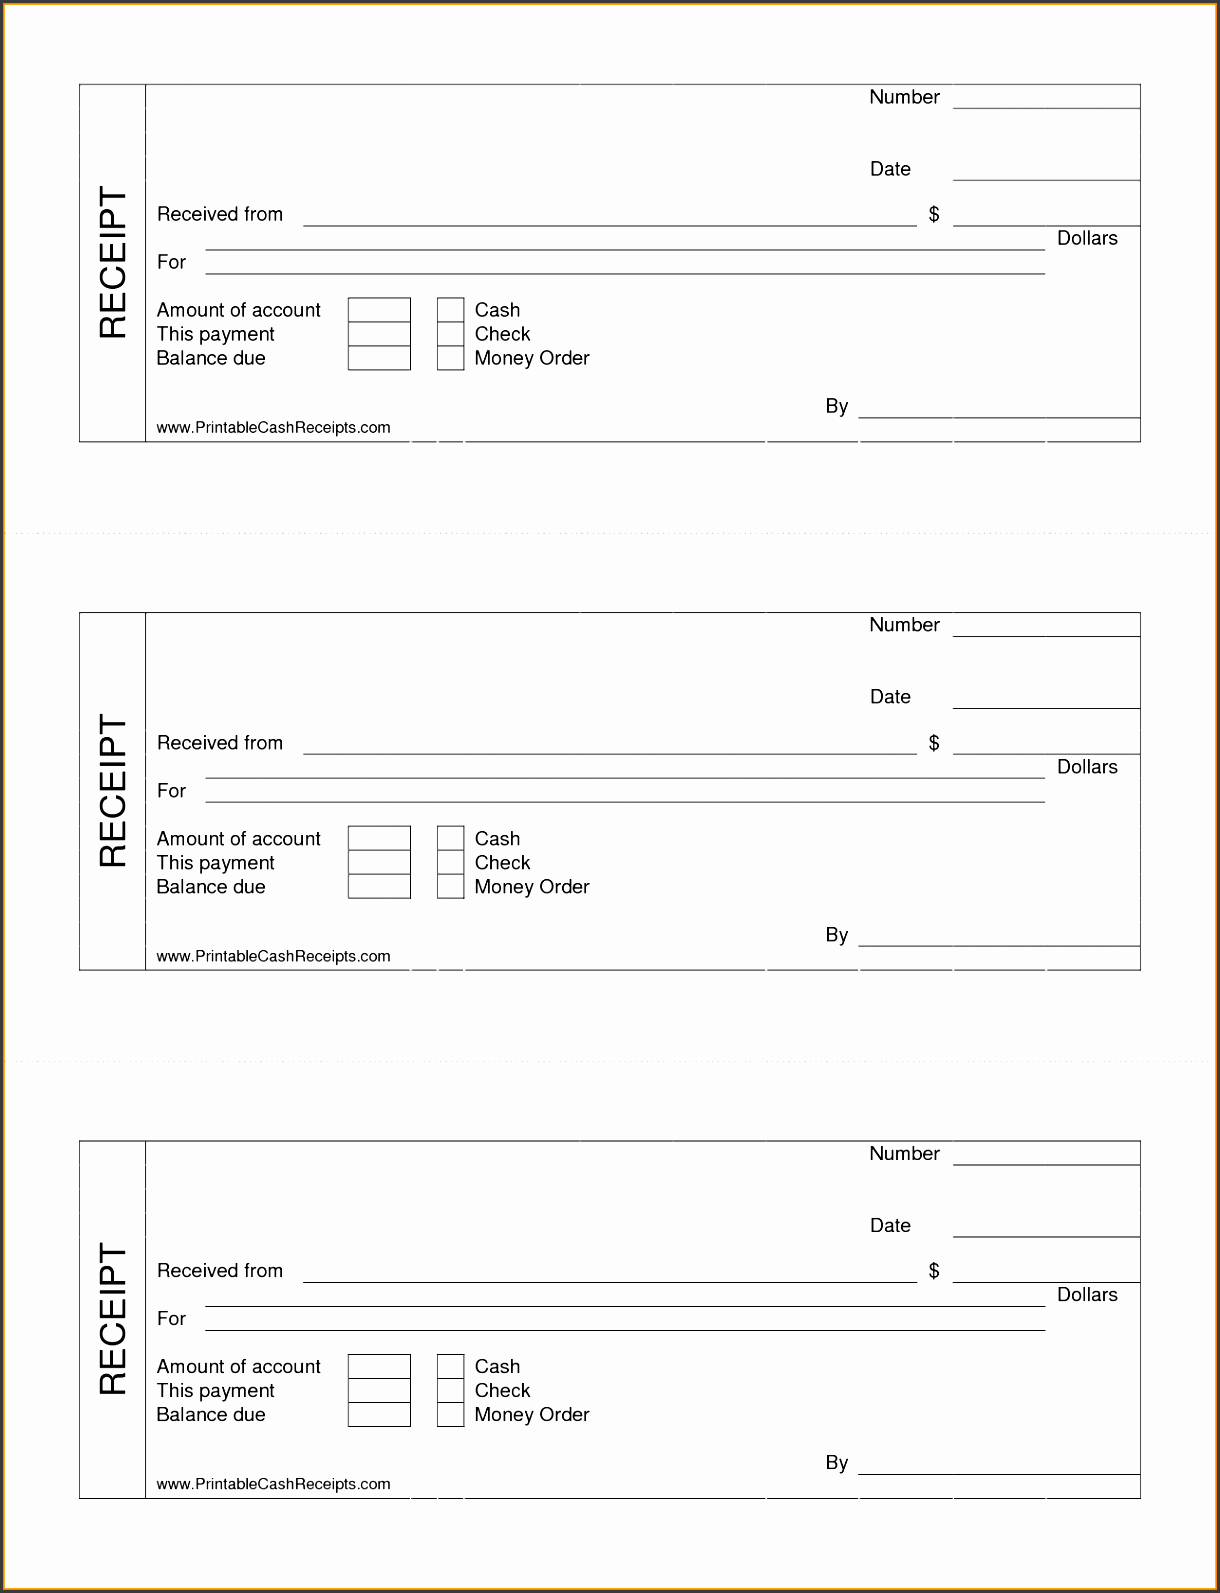 rent payment receipt template for free generate auotmated prefilled rent receipt print rent receipts format online india for exemption on hra